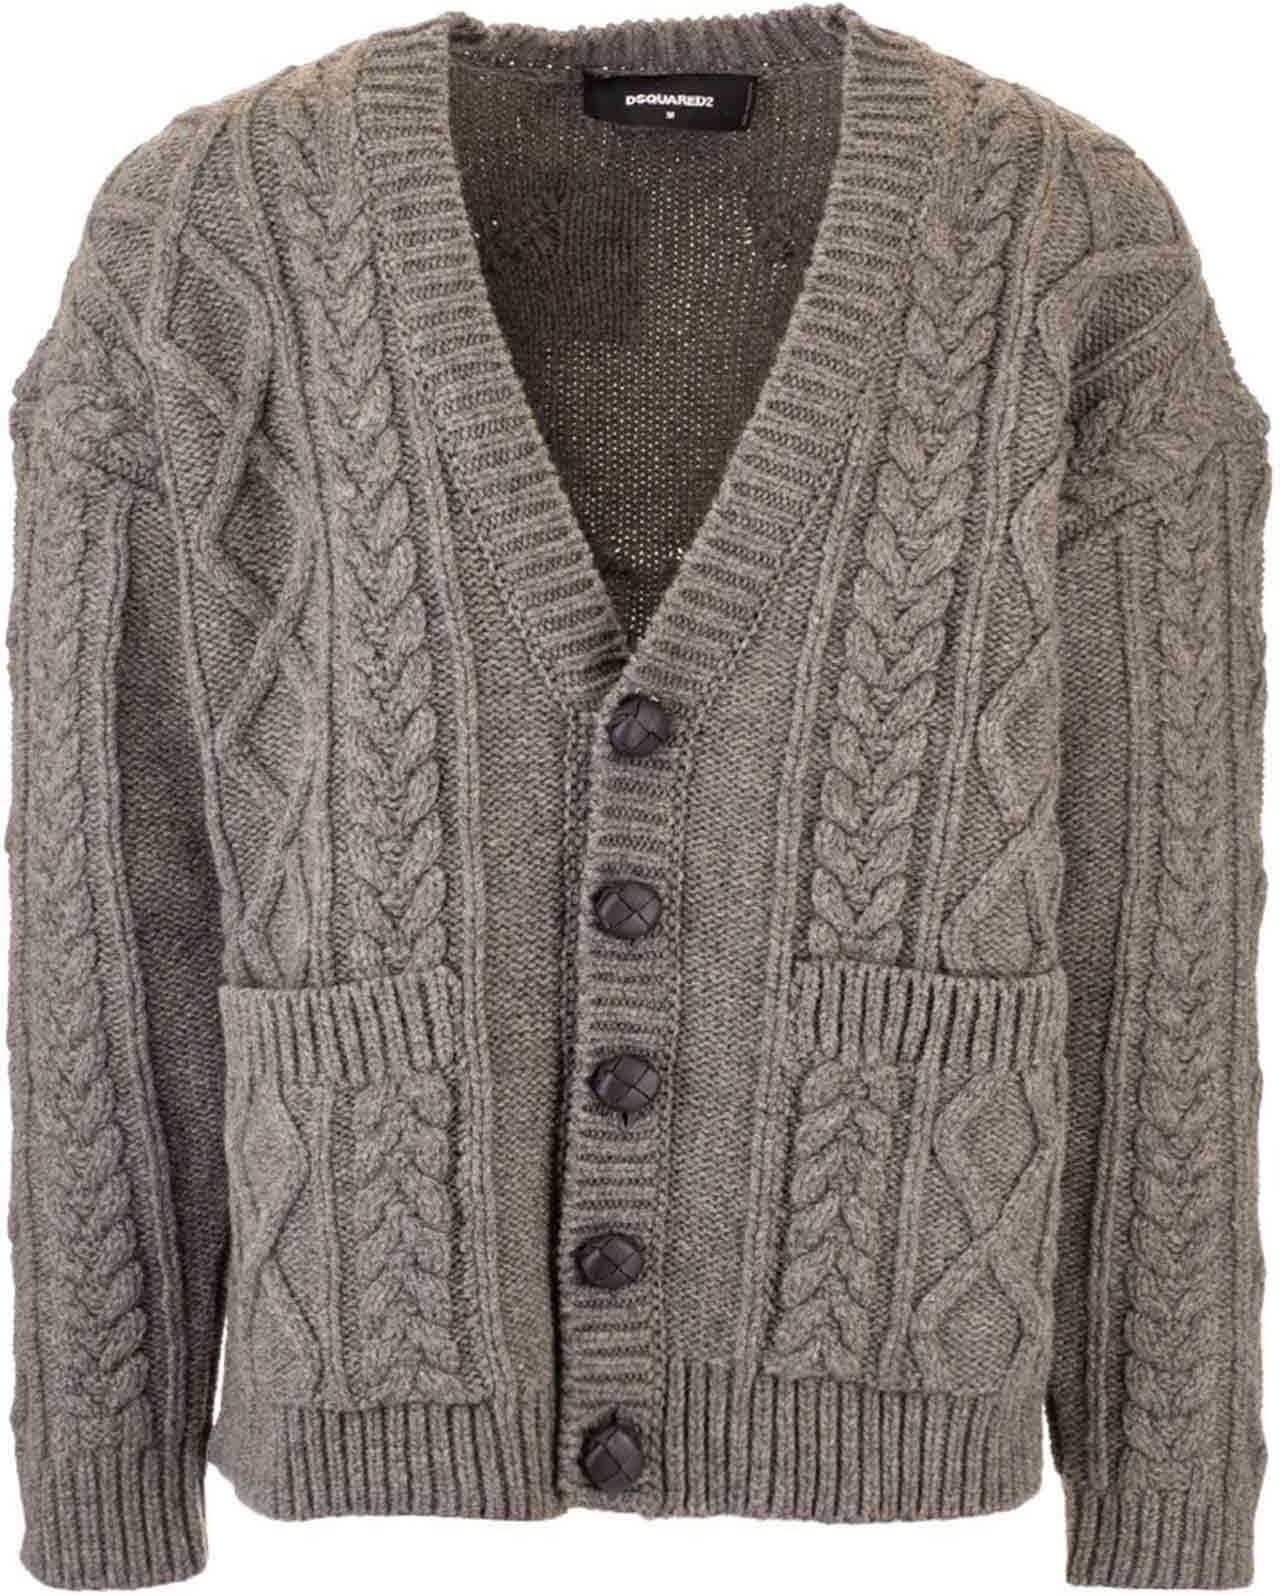 DSQUARED2 Cable Knit Cardigan In Grey Grey imagine